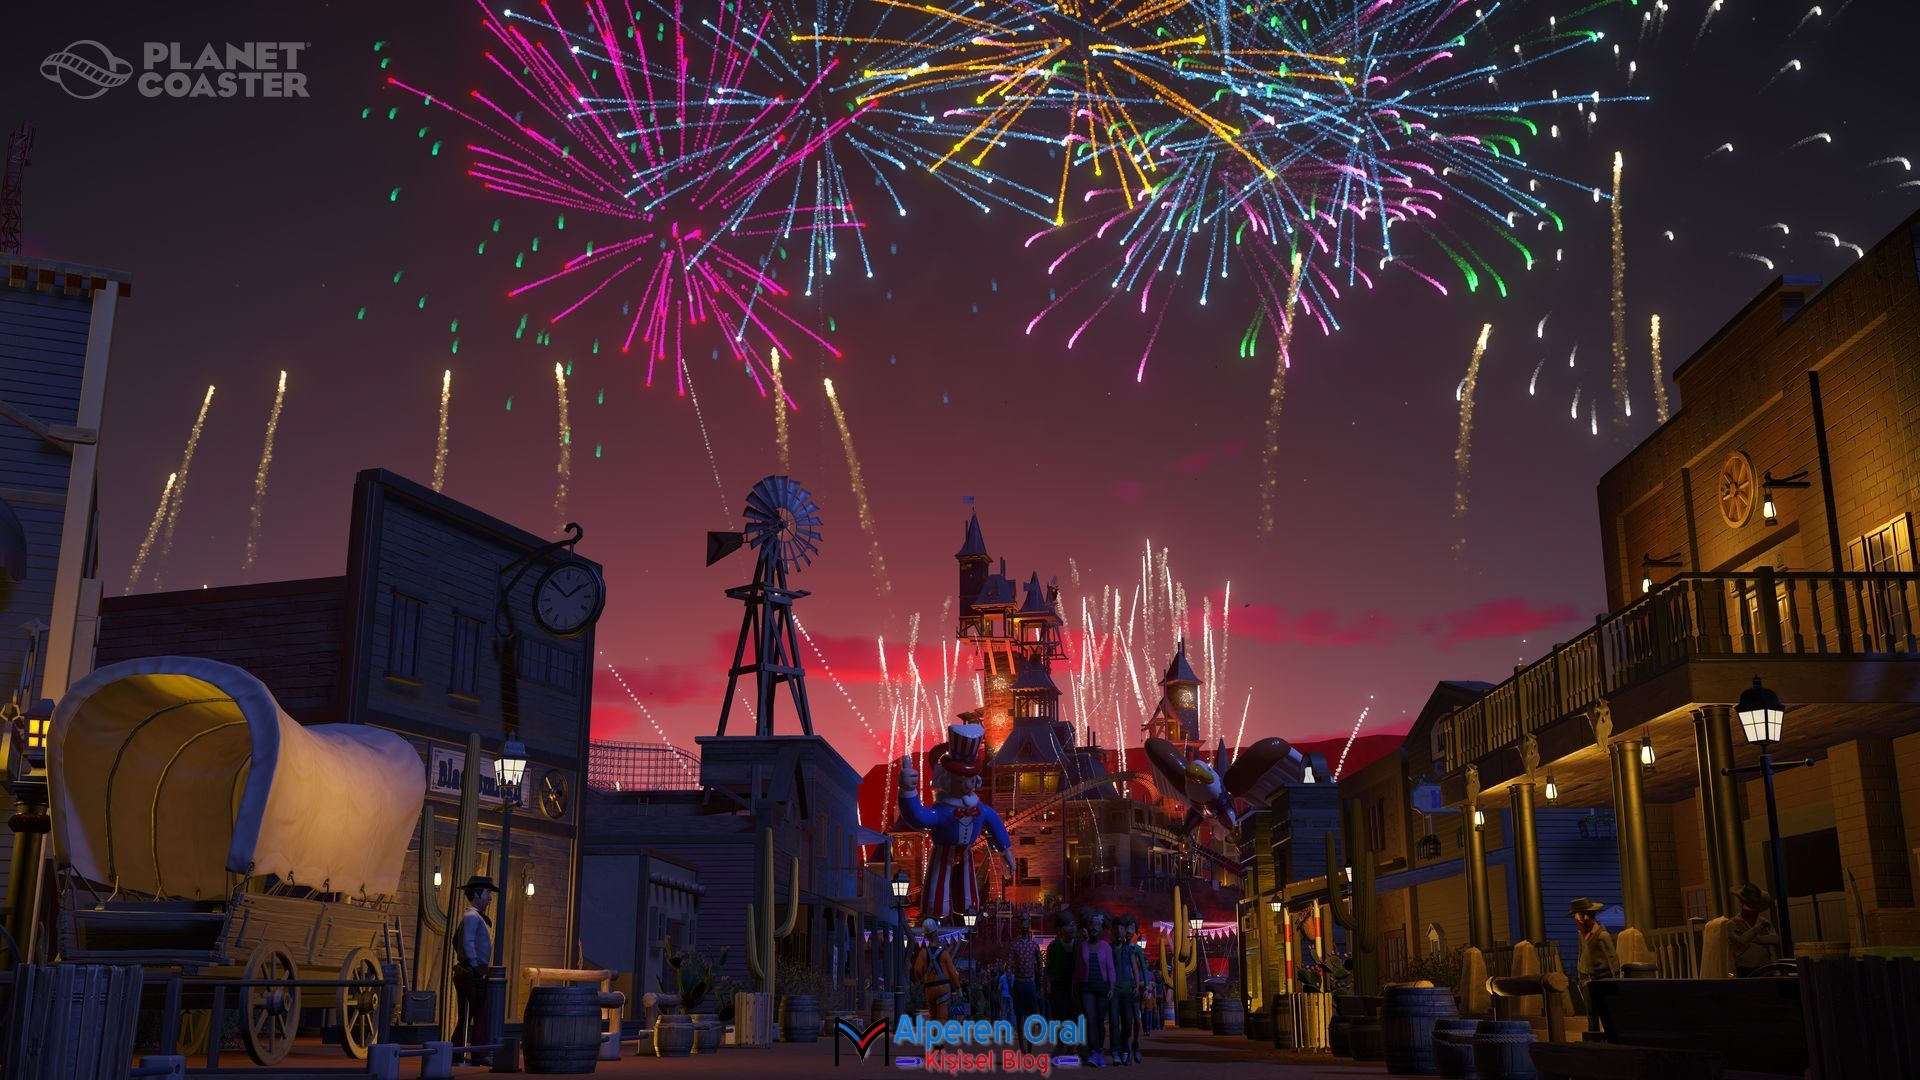 PLANET COASTER CEDAR POINTS STEEL VENGEANCE 1.3.6 -STEAMPUNKS Full Torrent İndir